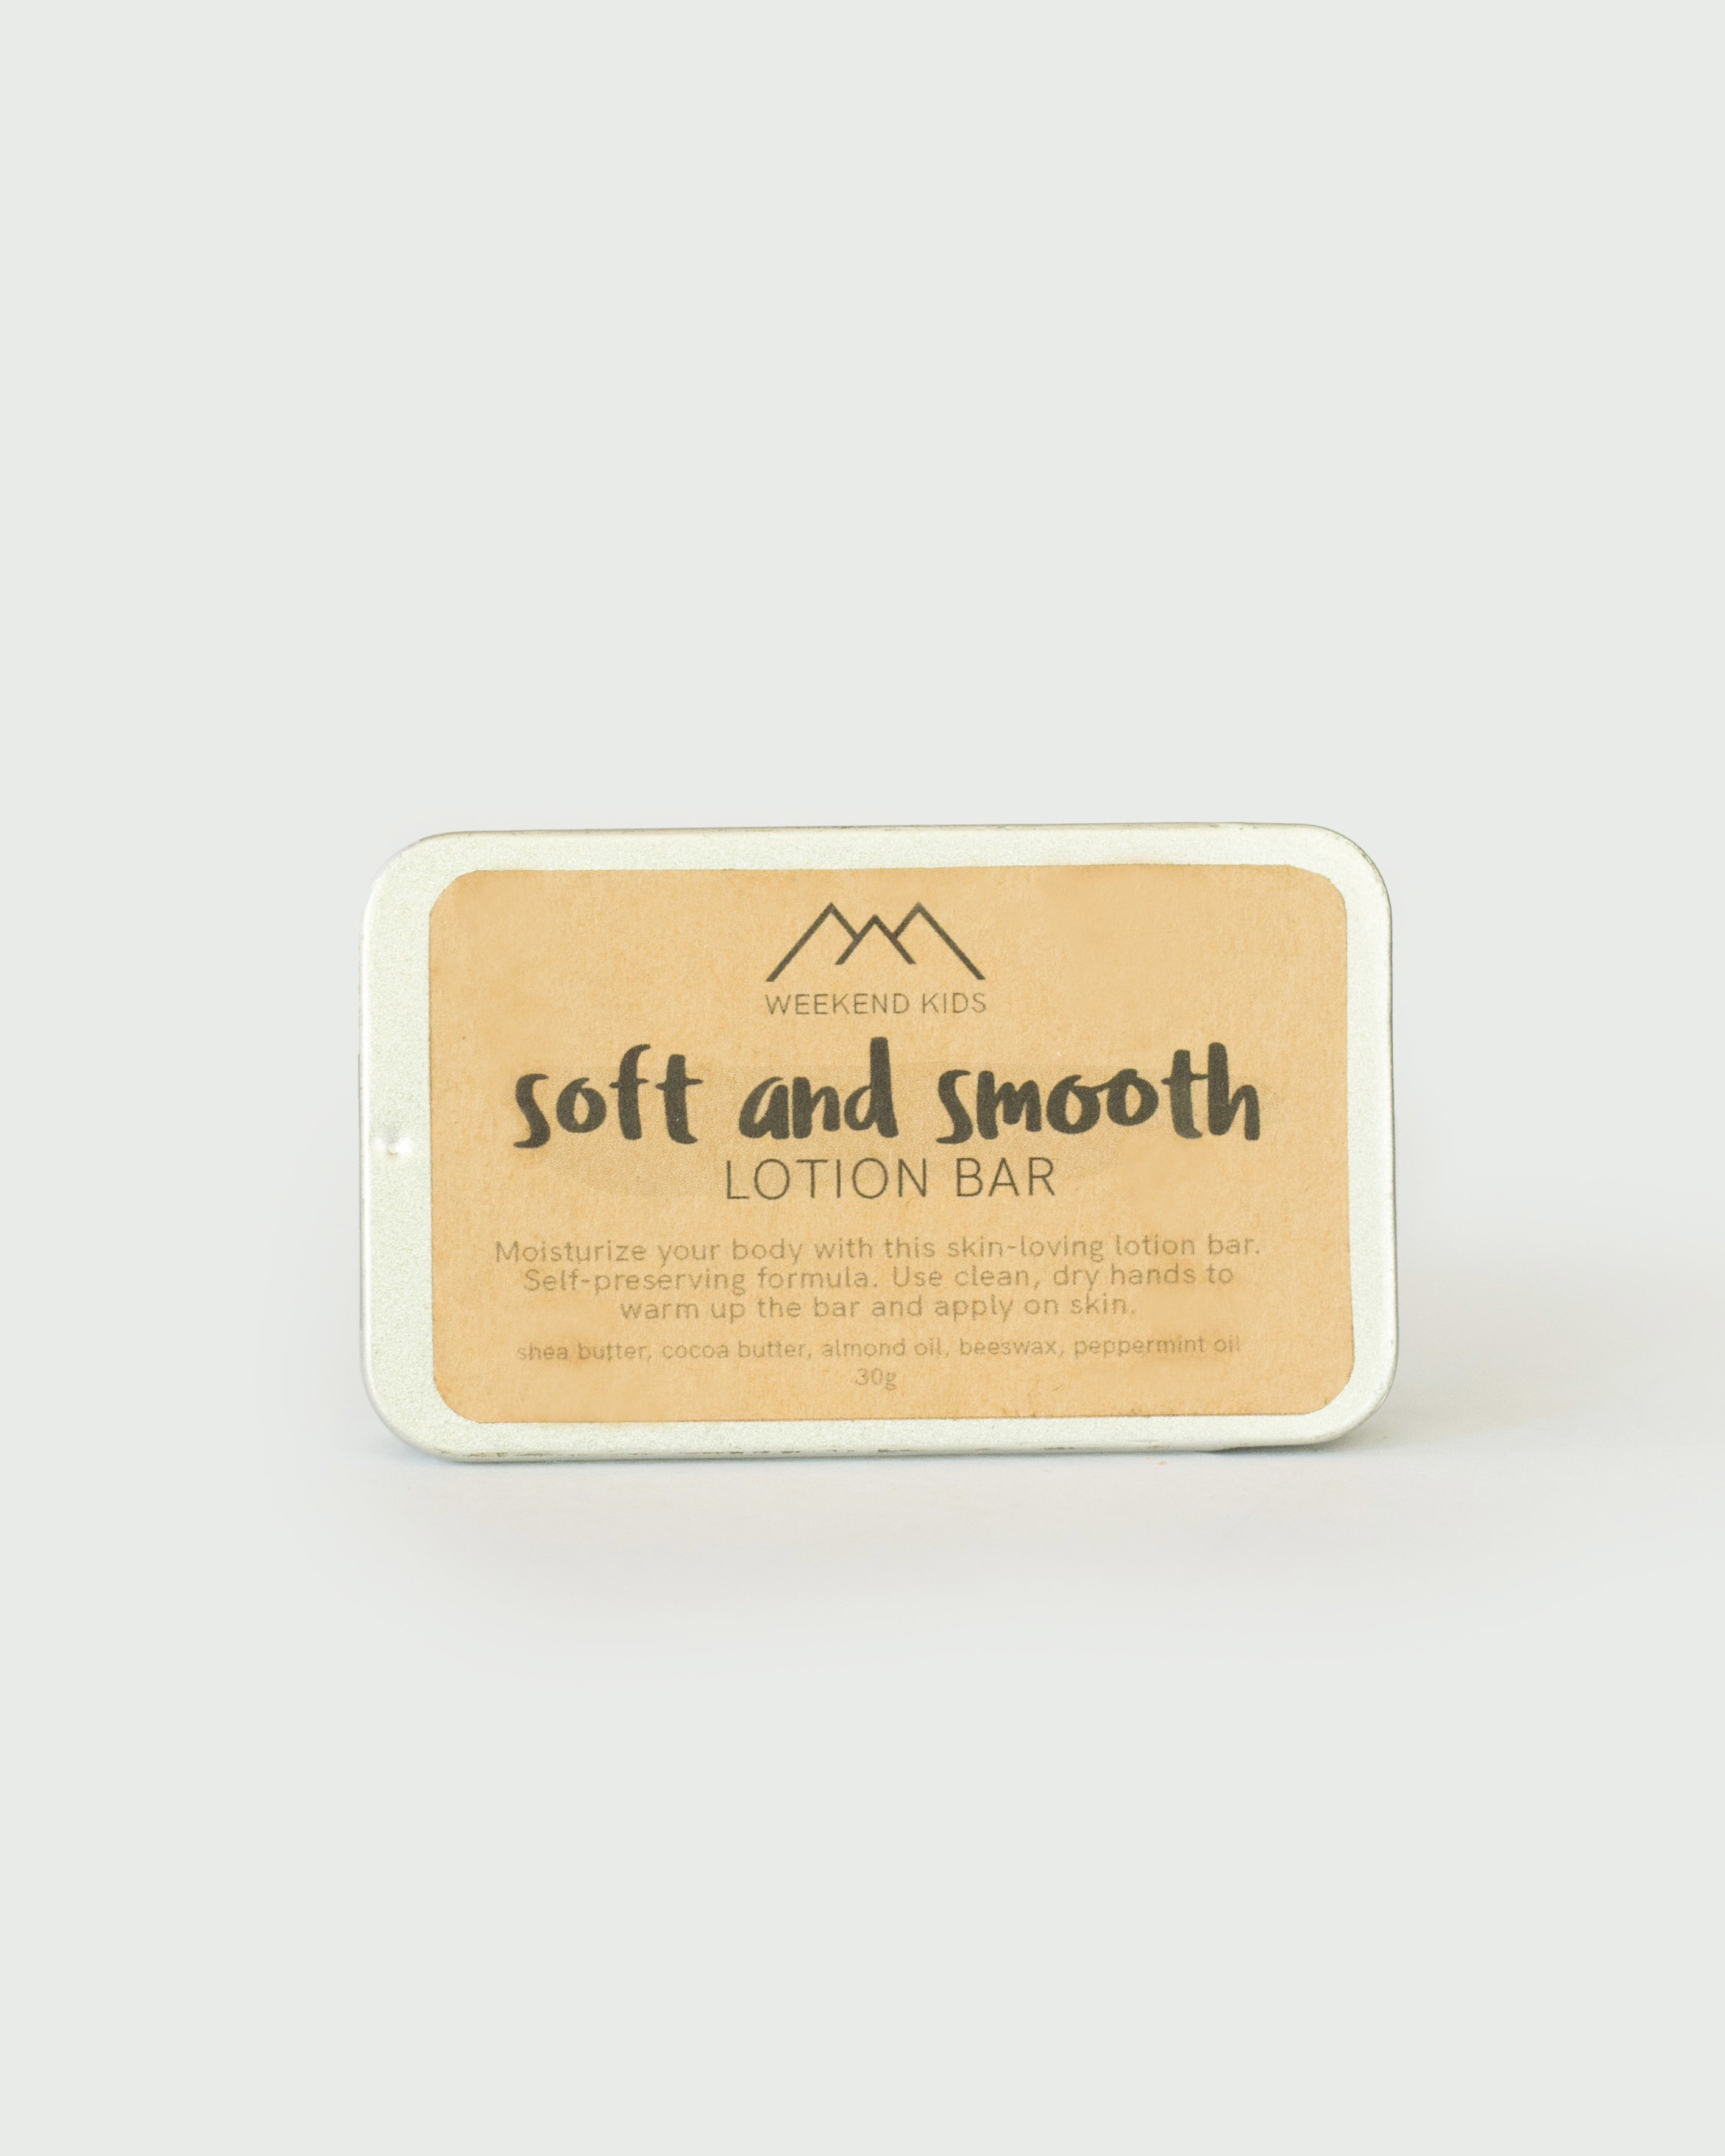 Soft and Smooth Lotion Bar